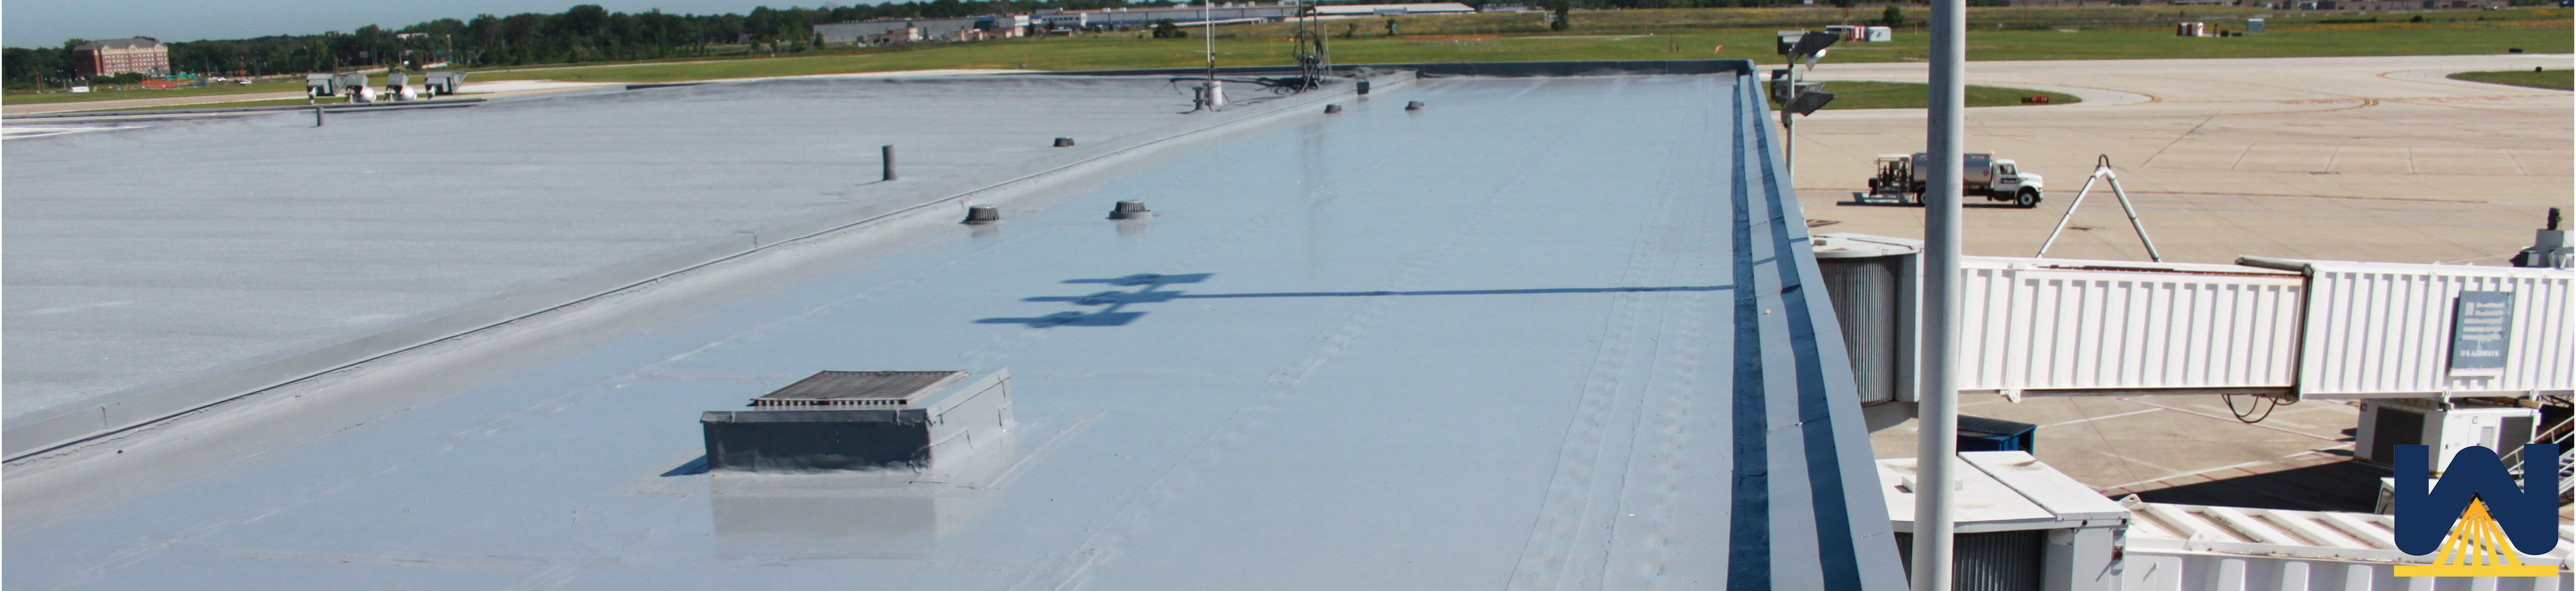 Cost Of Silicone Restoration Membrane For A Commercial Roof | Commercial  Roofing Contractor, Cleveland Ohio